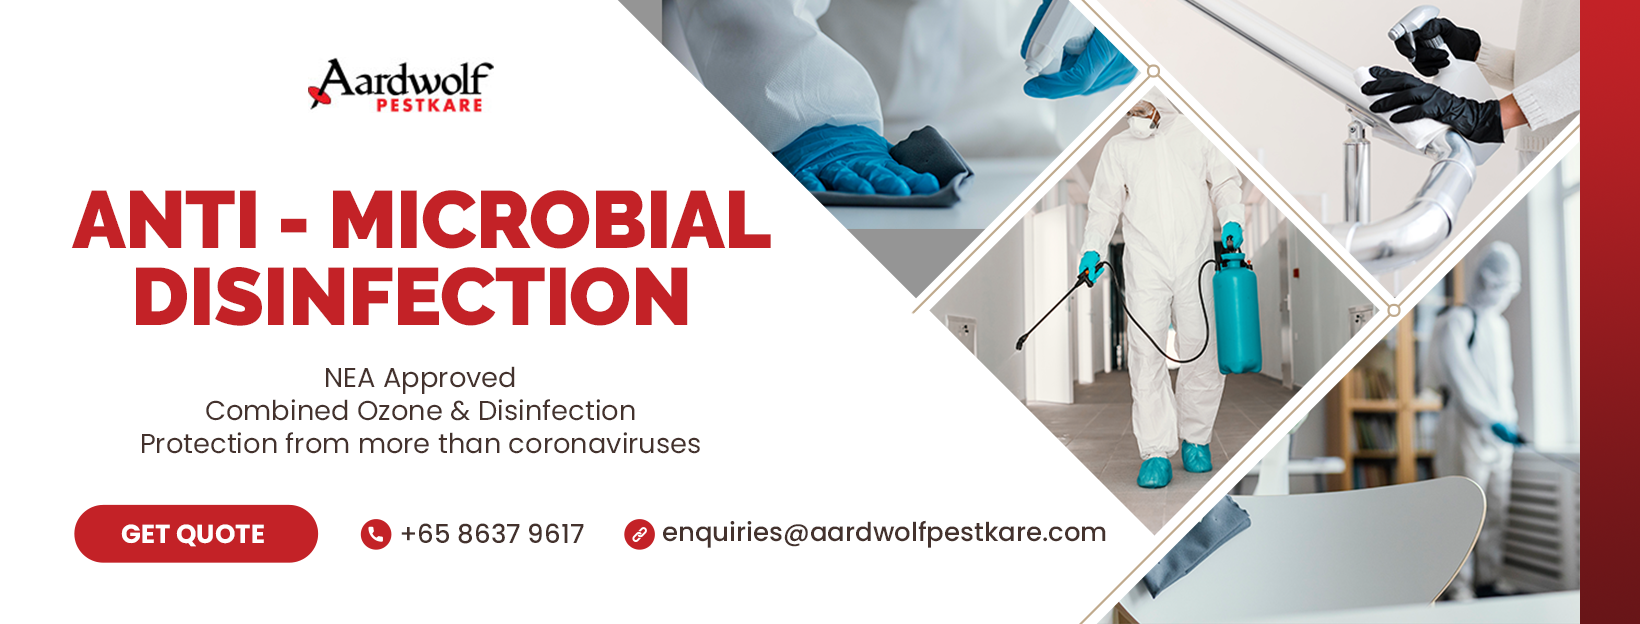 aardwolf pestkare anti microbial disinfection services AMD